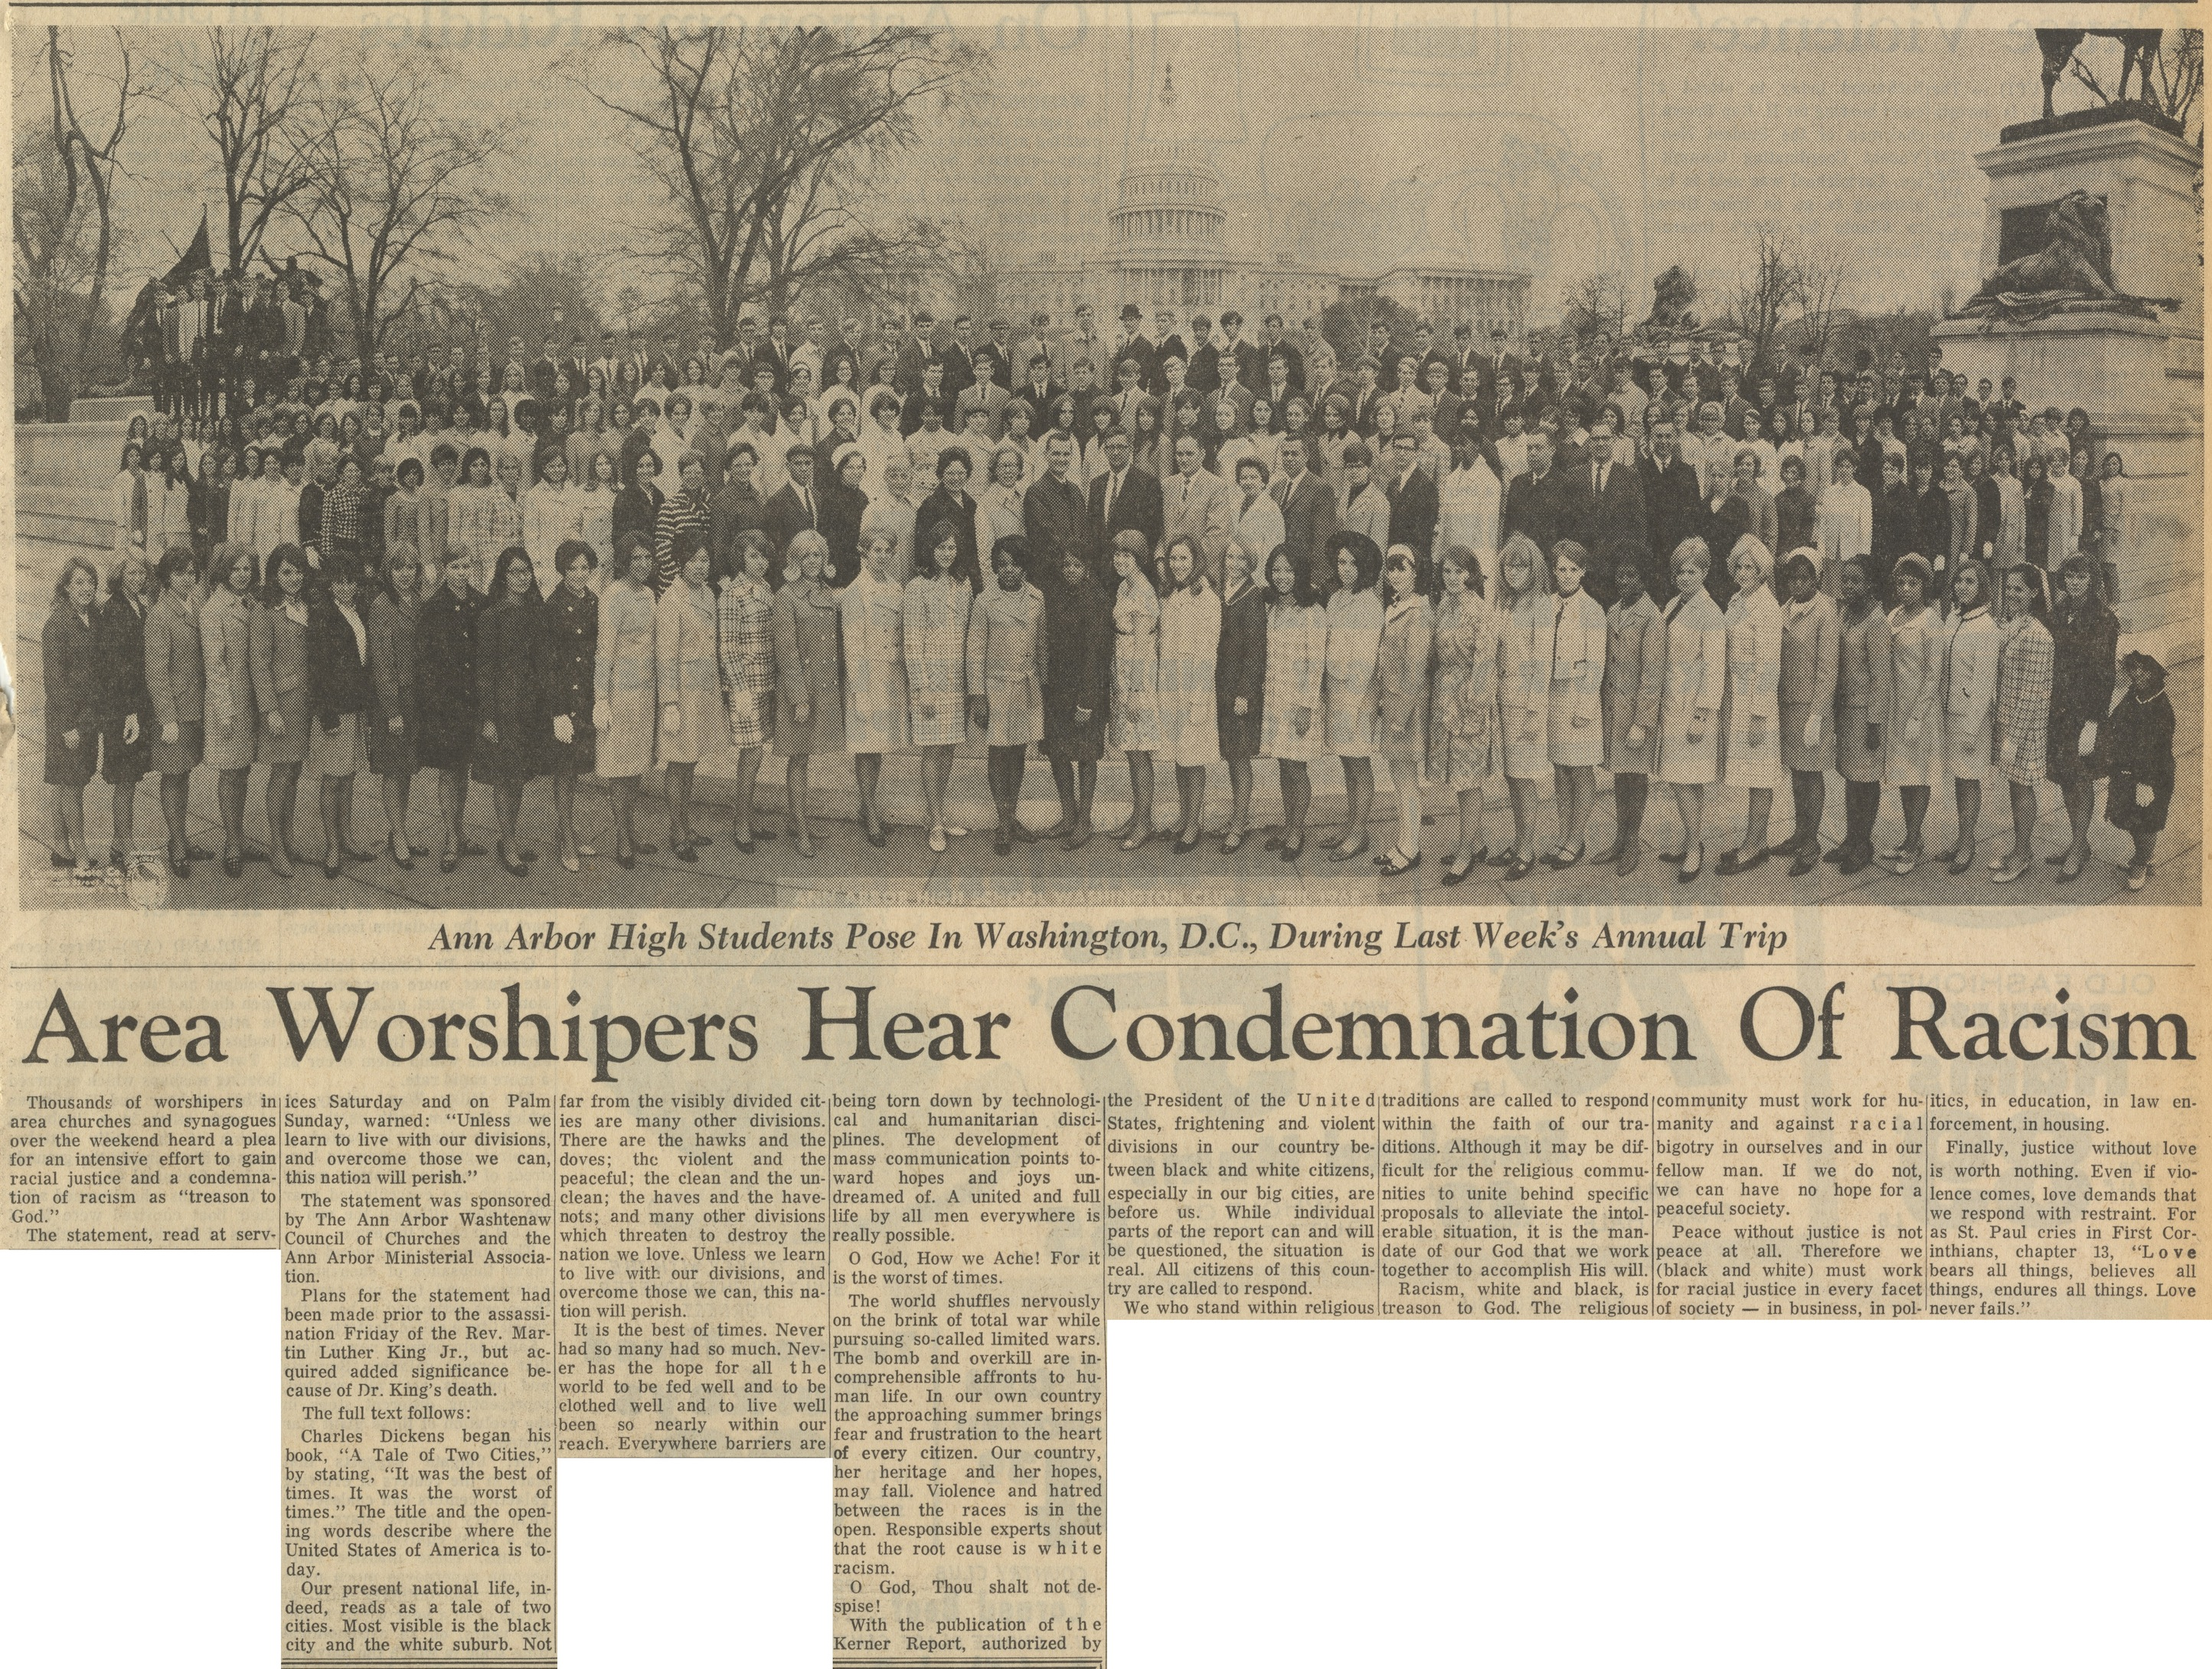 Area Worshipers Hear Condemnation Of Racism image